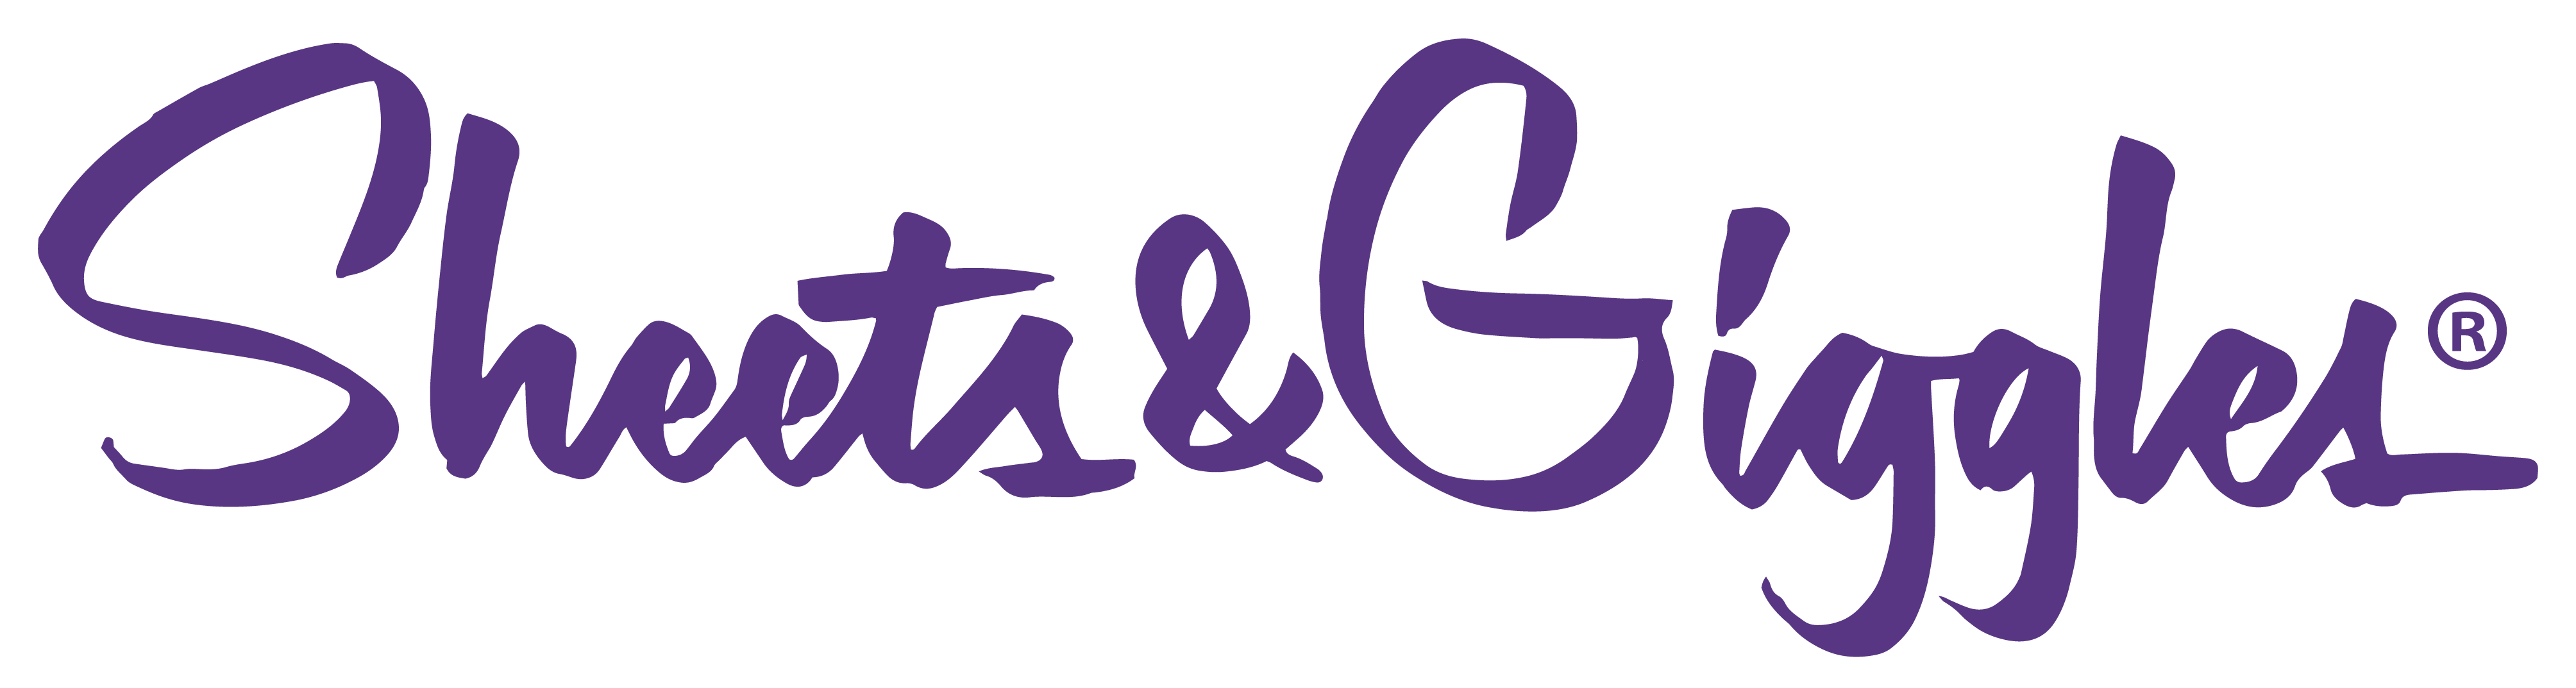 Sheets & Giggles logo png purple